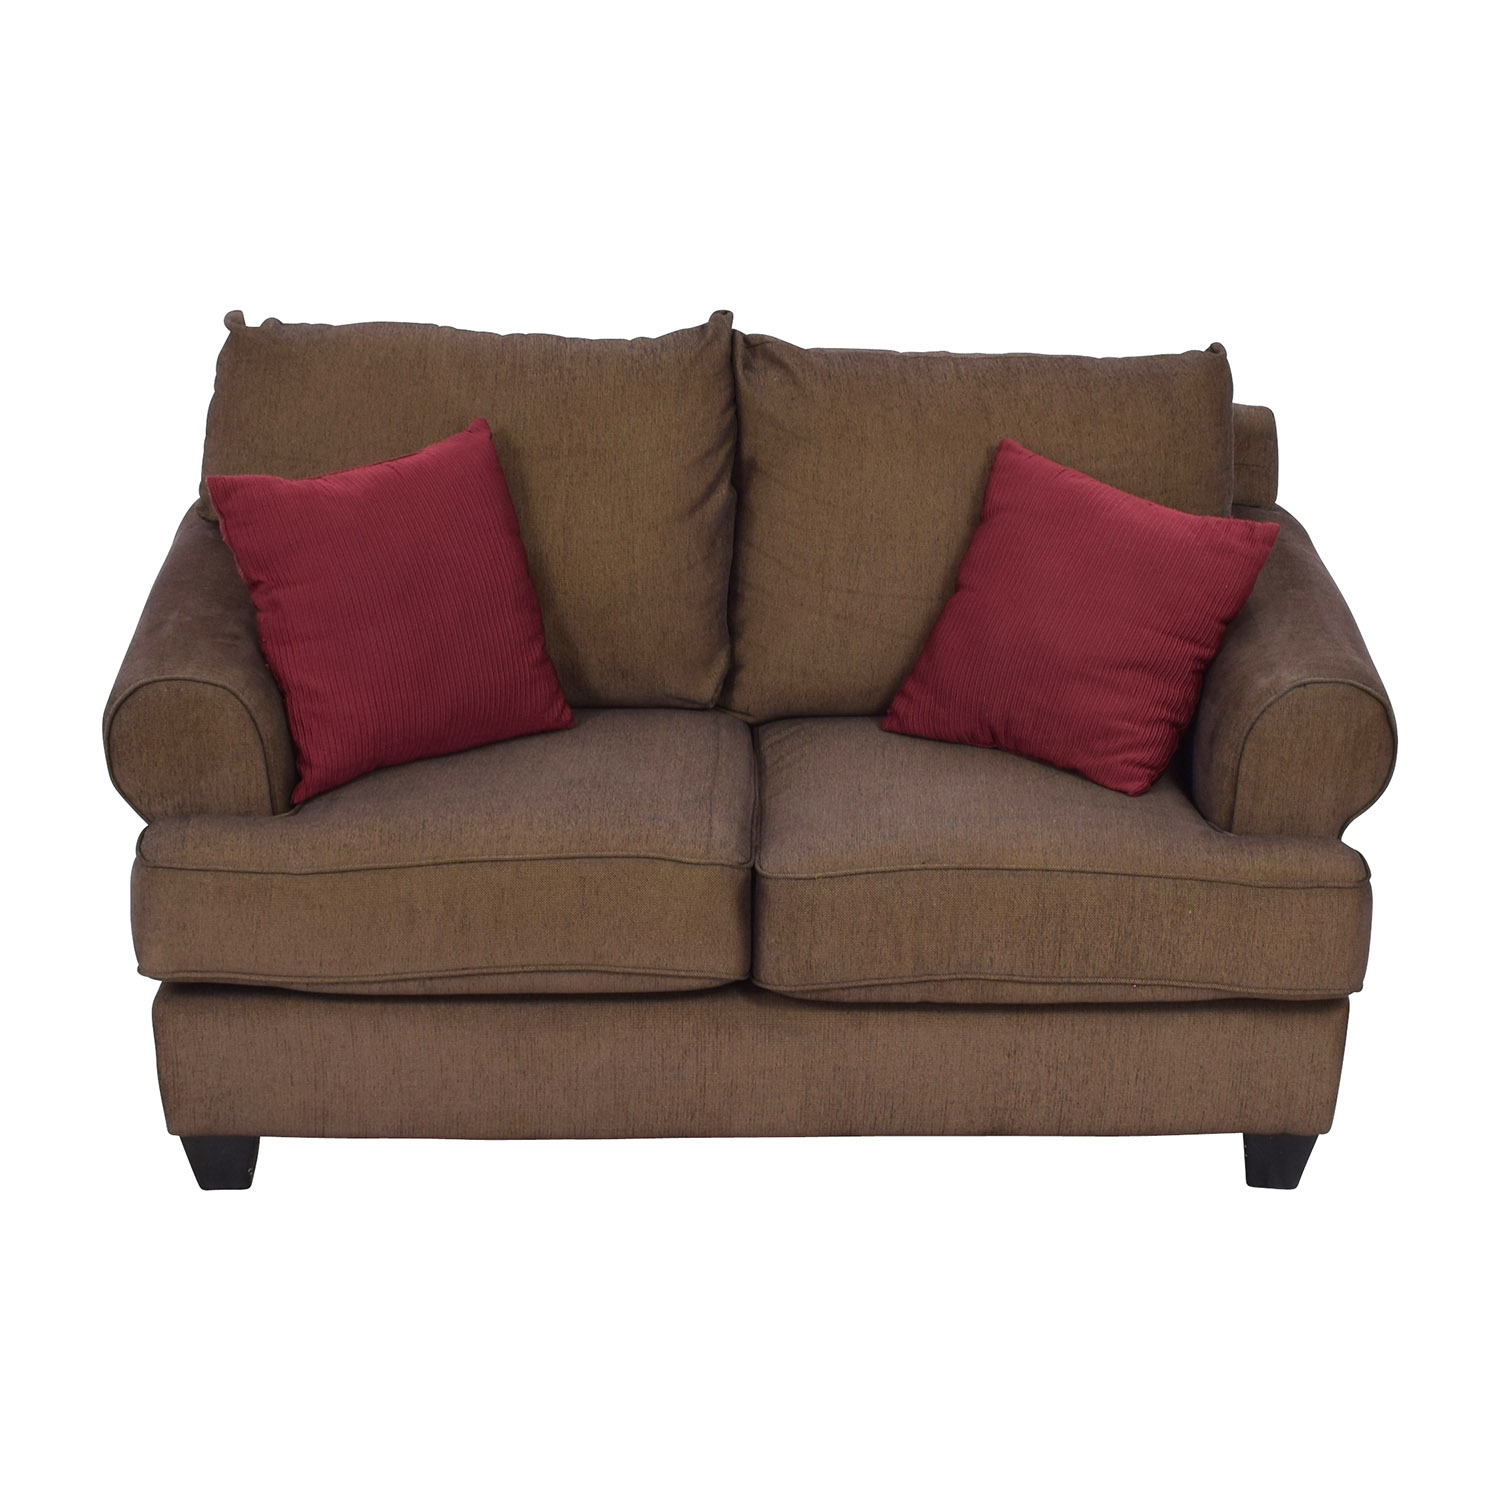 Brown Two-Seat Loveseat with Toss Pillows Sofas